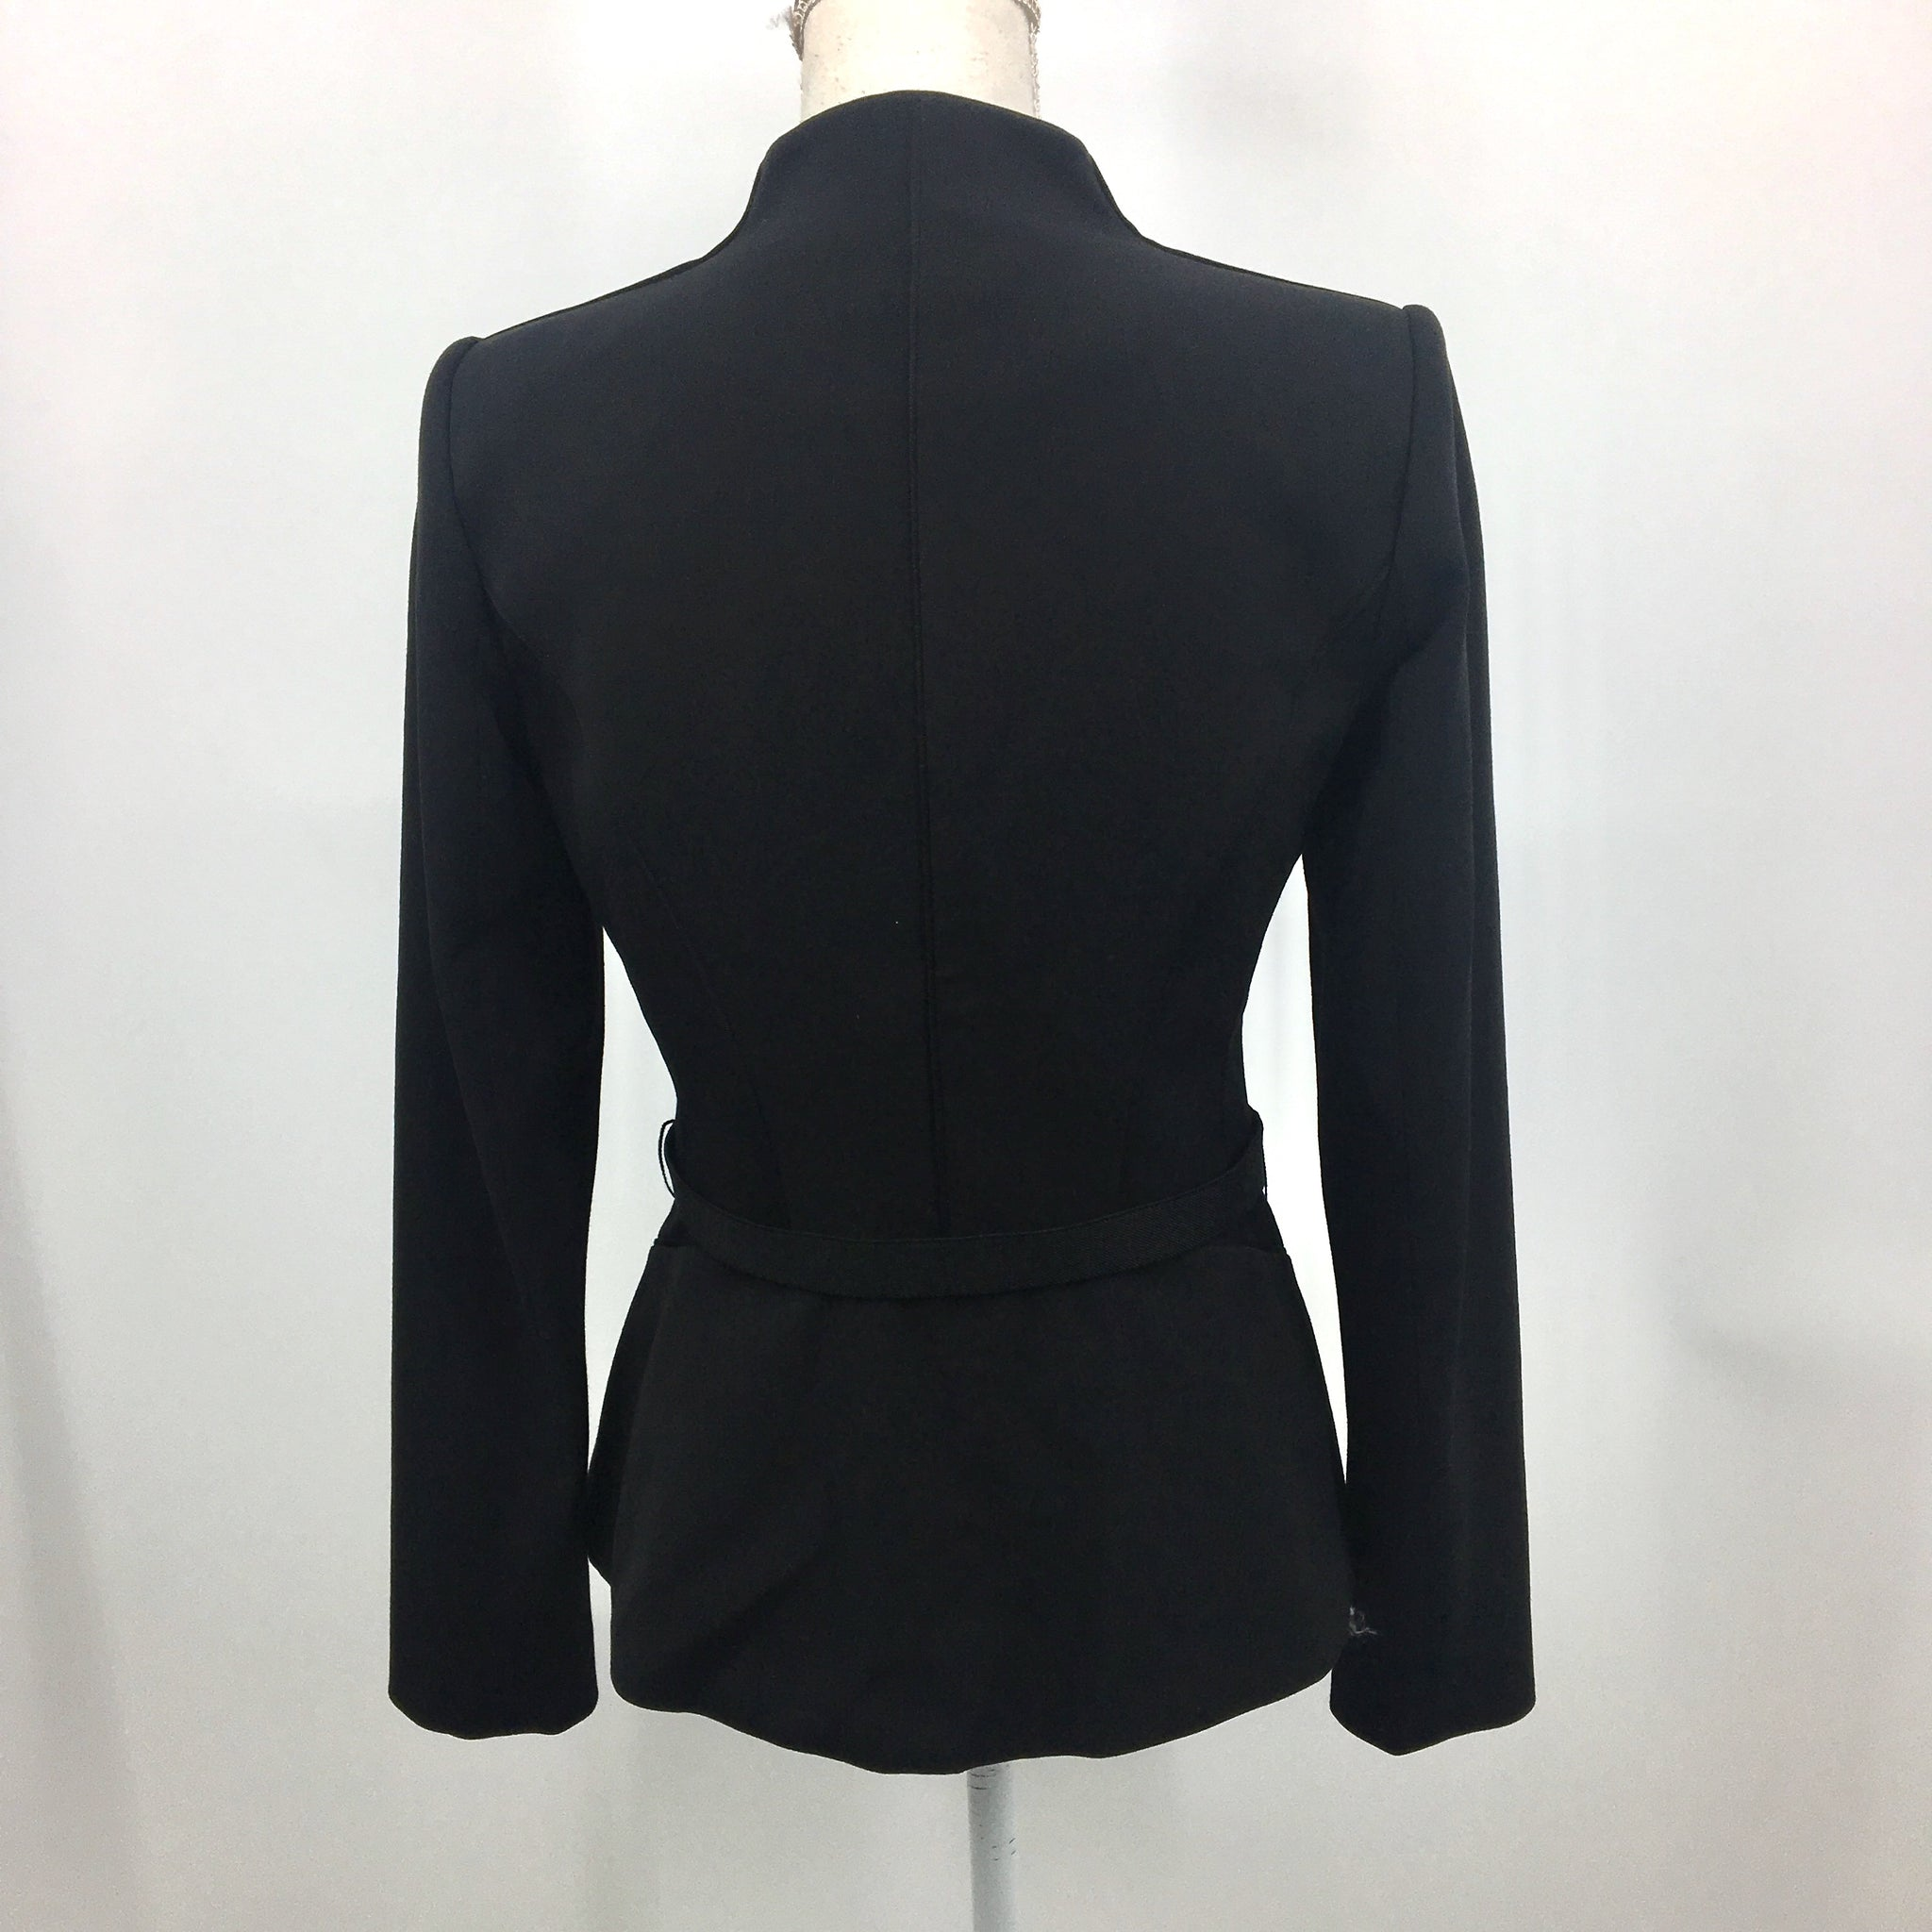 White House Black Blazer